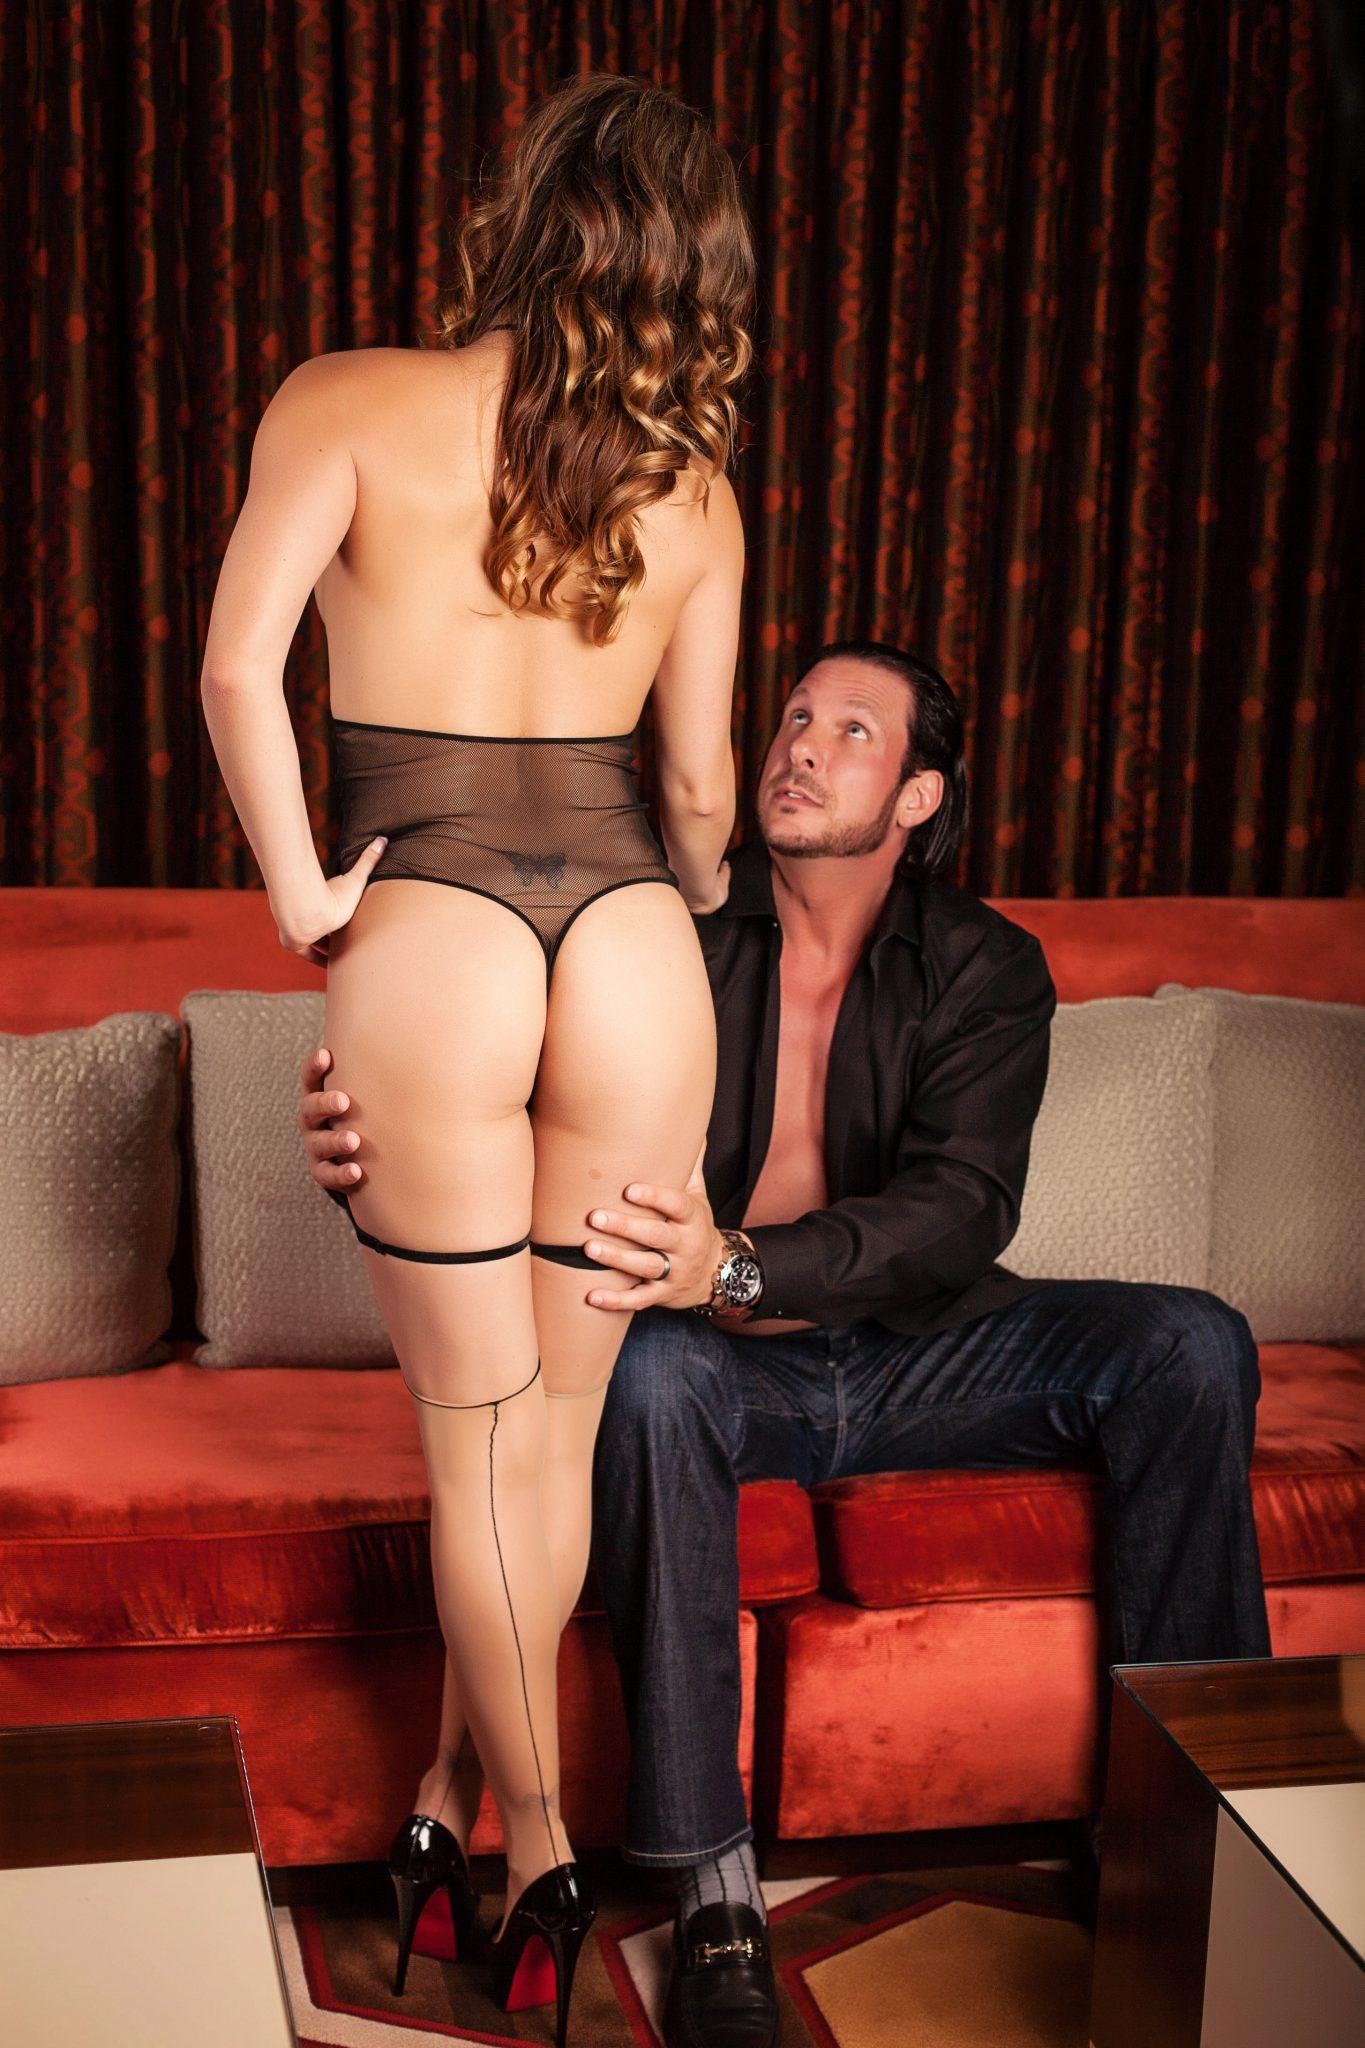 Sexy photoshoot for couples in Las Vegas by Haute Shots.